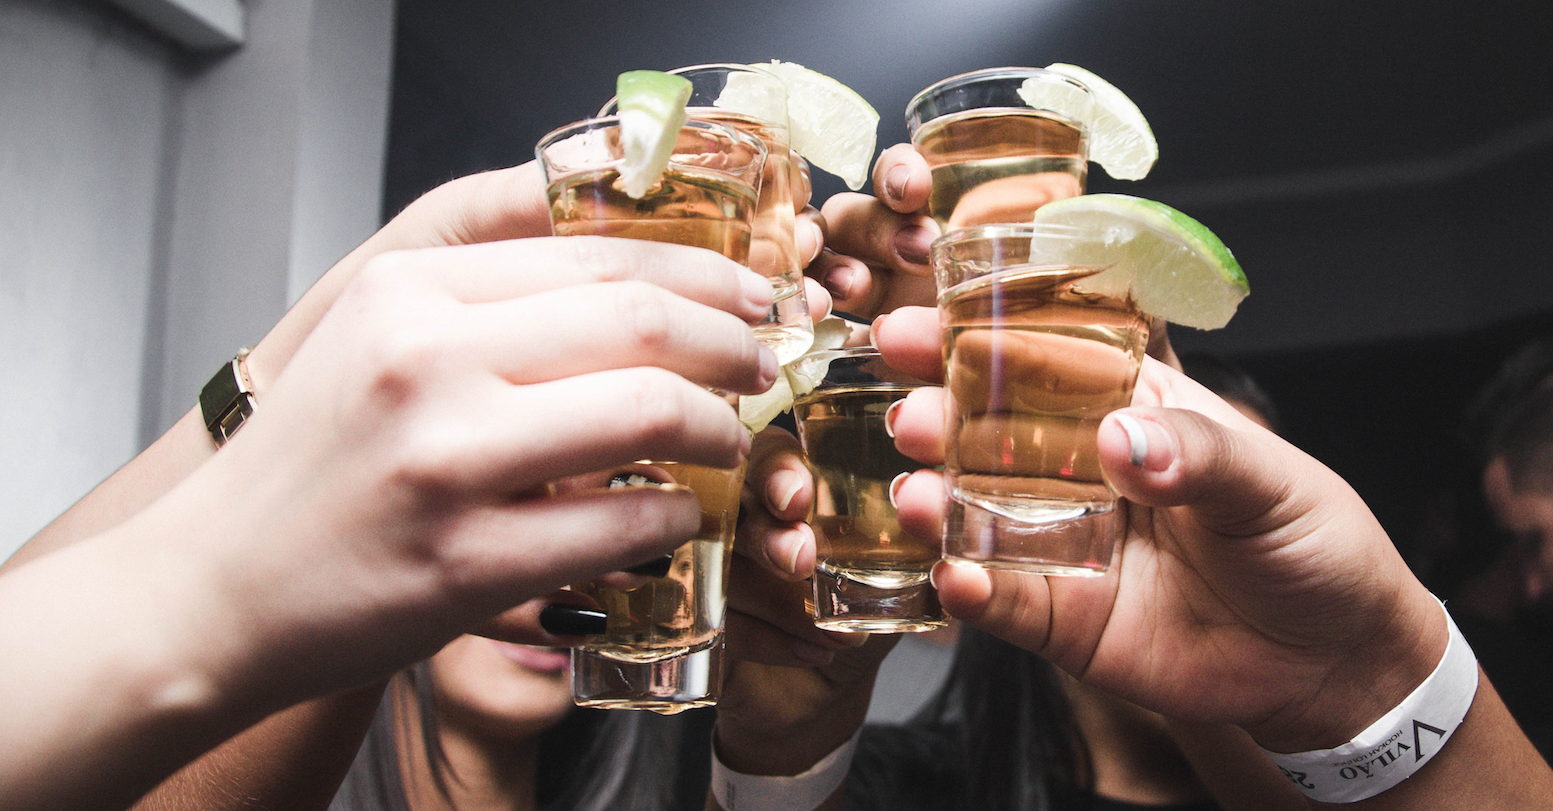 Bored Brits devise new 'coronavirus shots' drinking game to play during lockdown